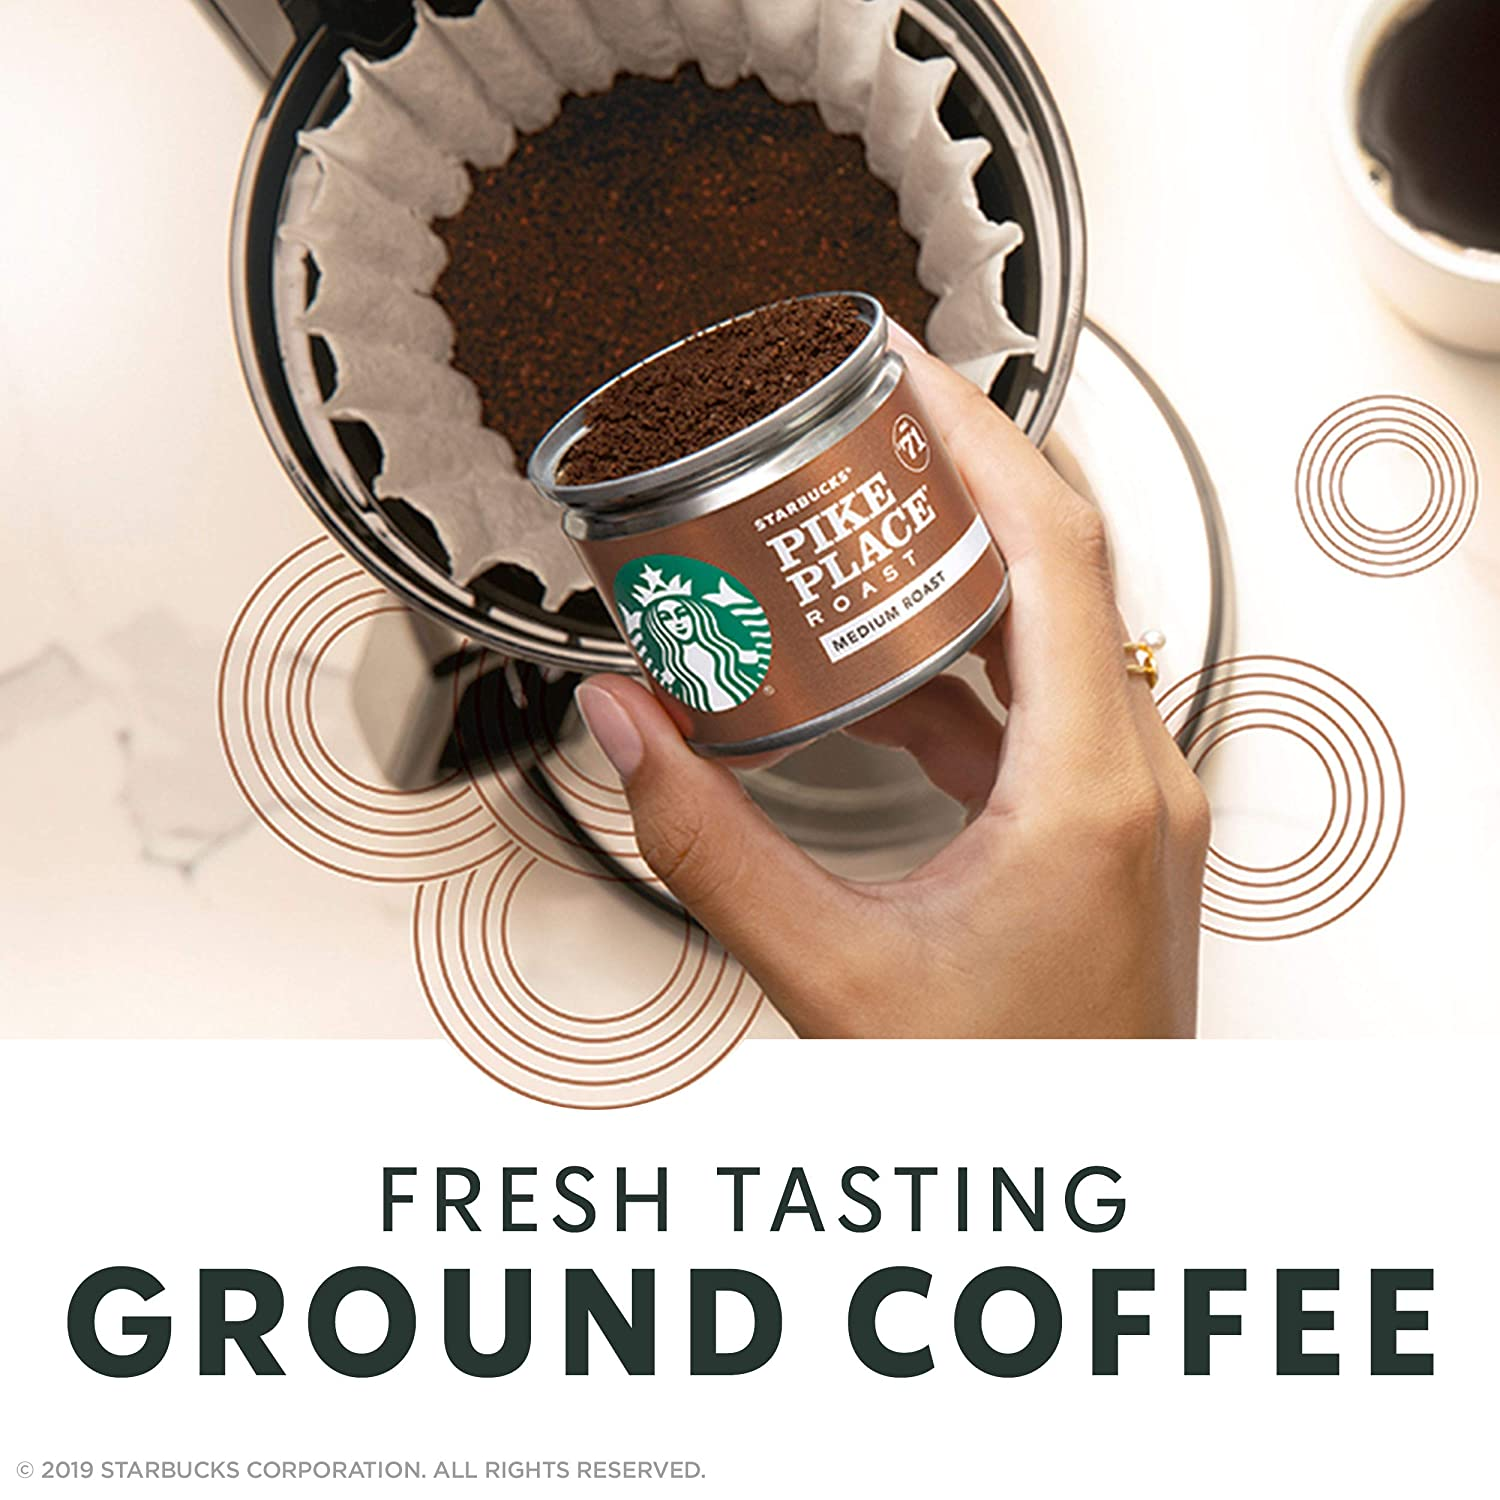 Starbucks Fresh Brew Ground Coffee Cans Variety Pack | Breakfast Blend & Pike Place Roast, Medium Roasts | Pre-portioned Recyclable Can | 16 Count